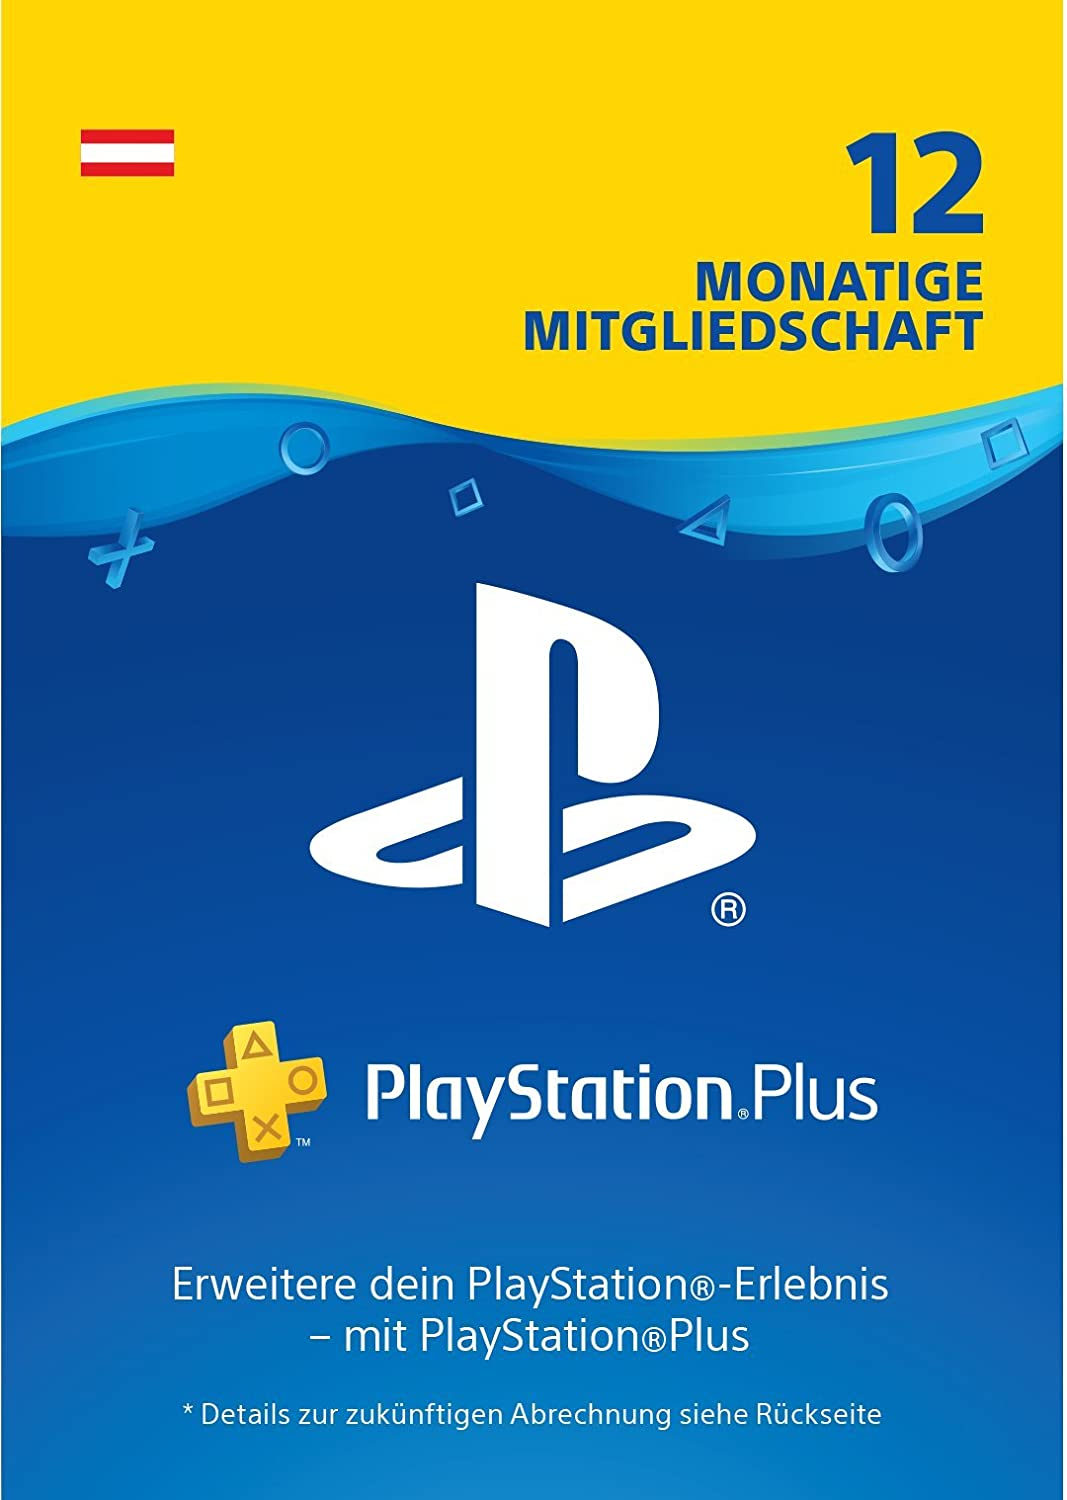 [amazon.de] Playstation Plus 12 Monate um 44,99€